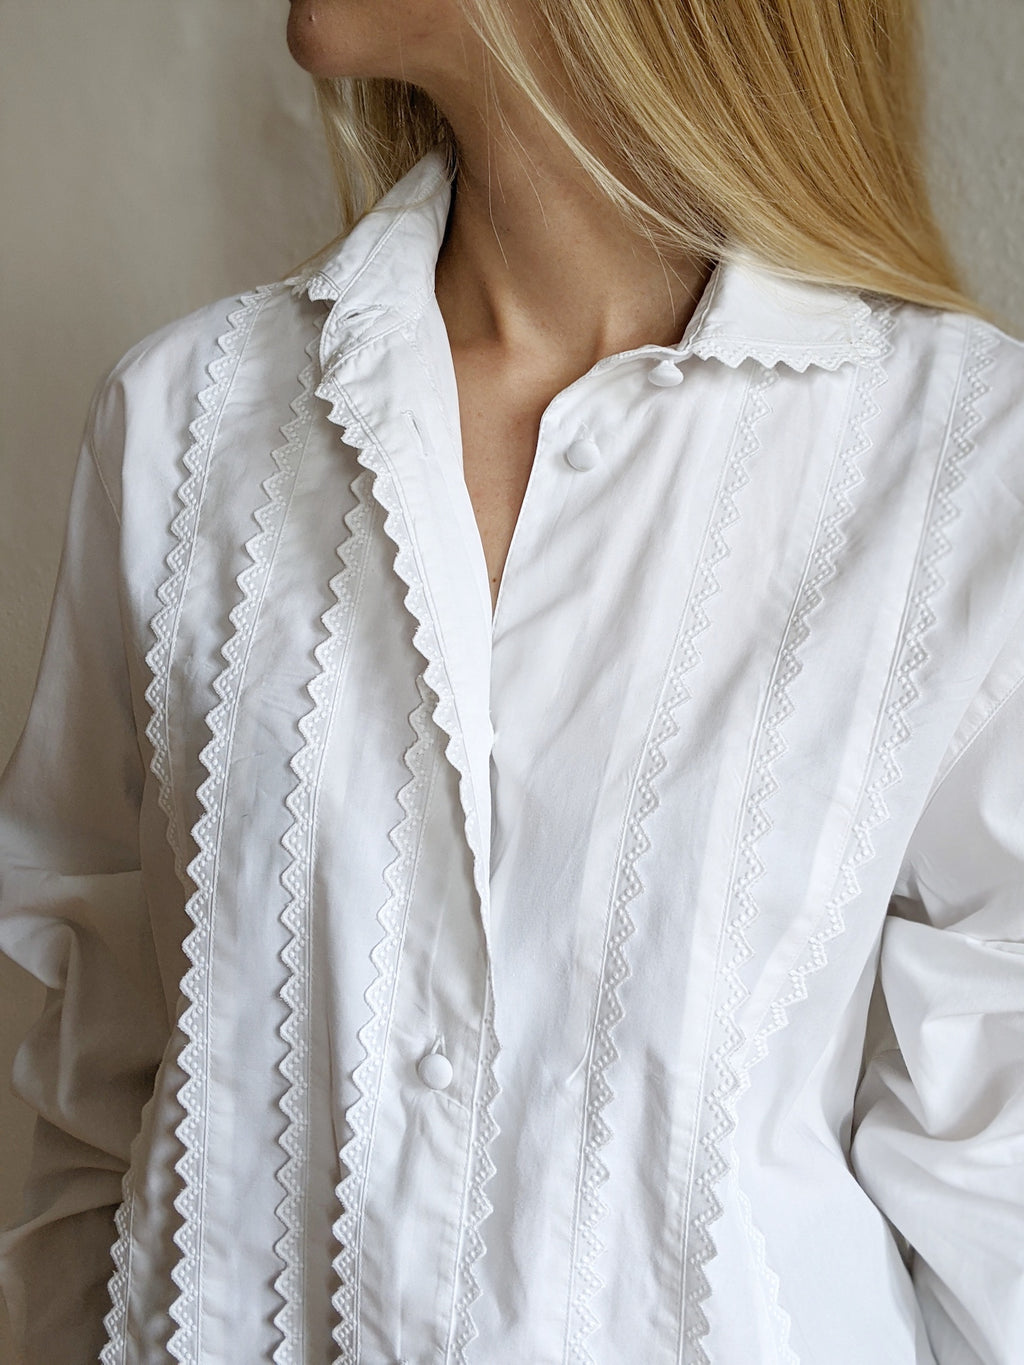 Lace-Trimmed Shirt